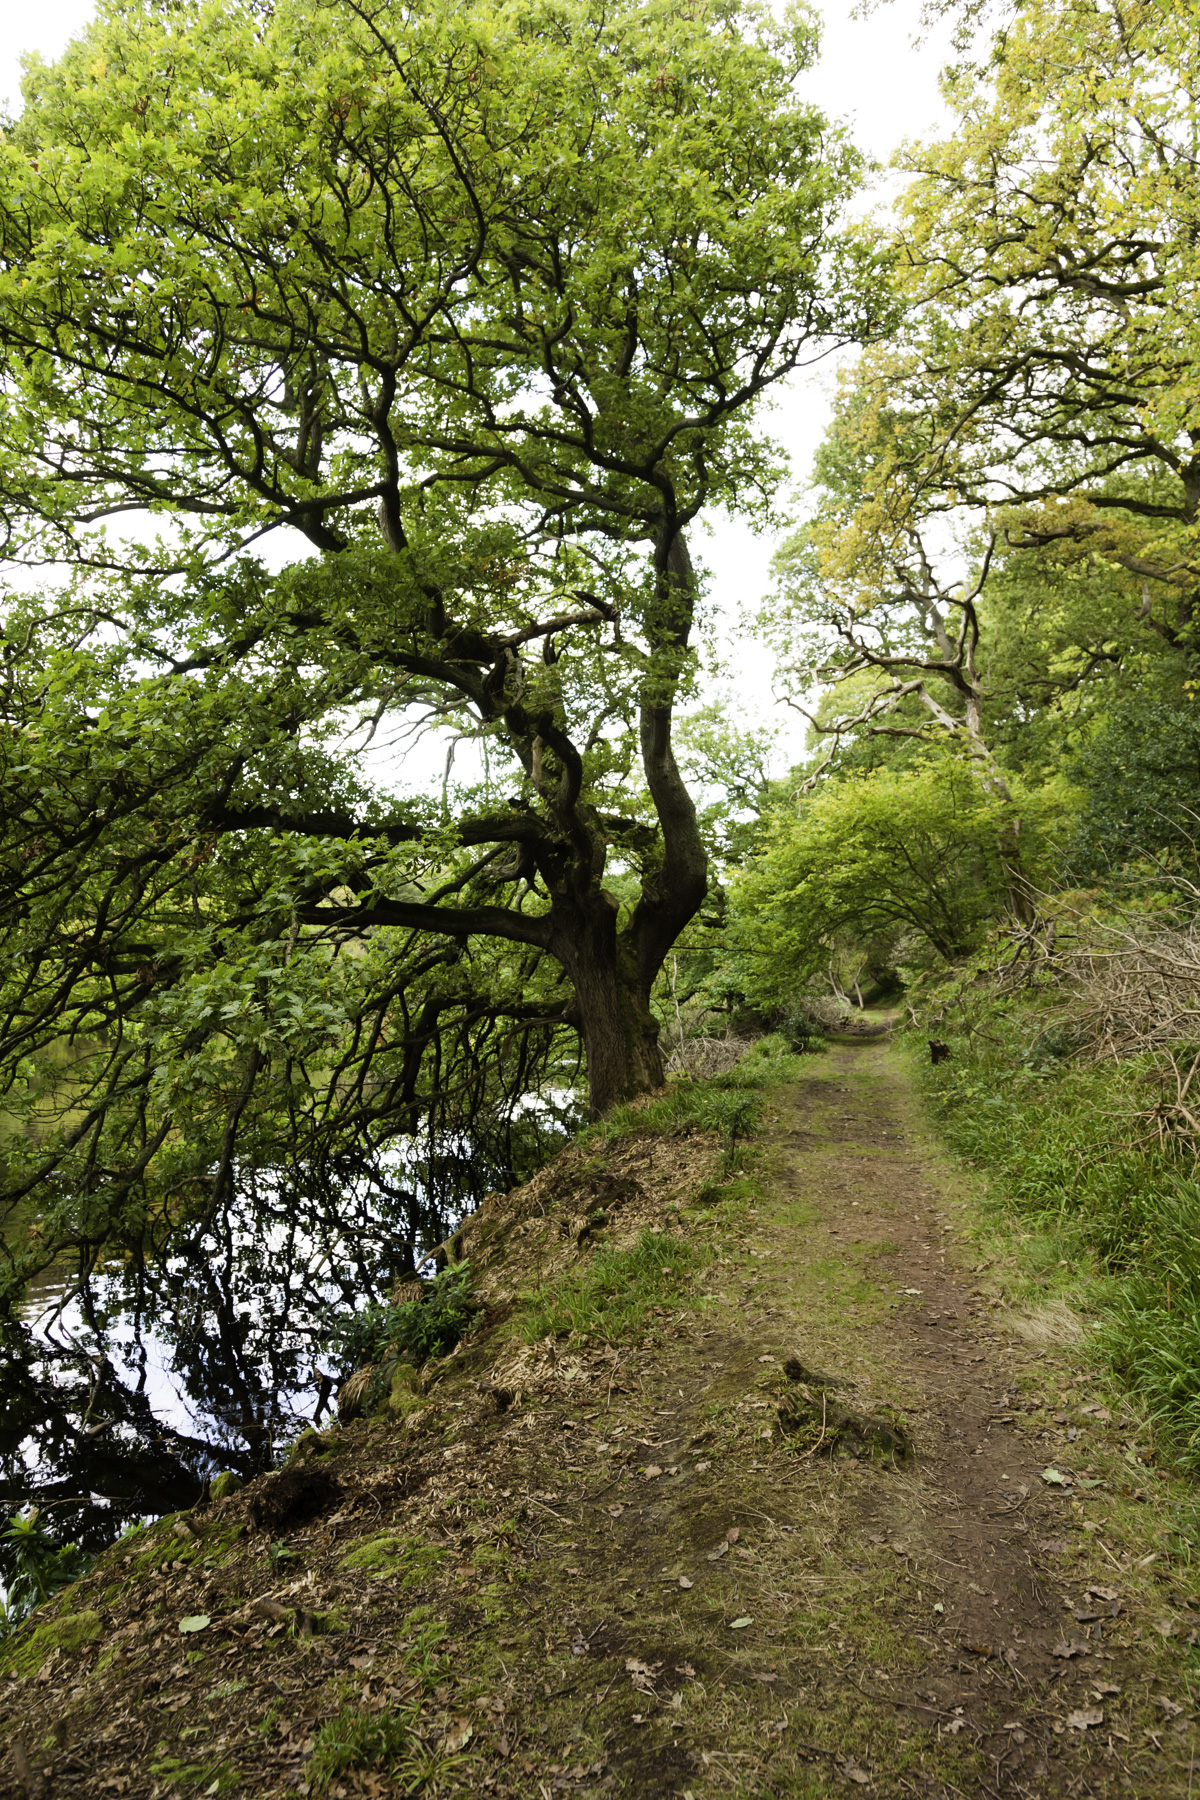 View down the path in Pressmennan Woods showing trees and the water.